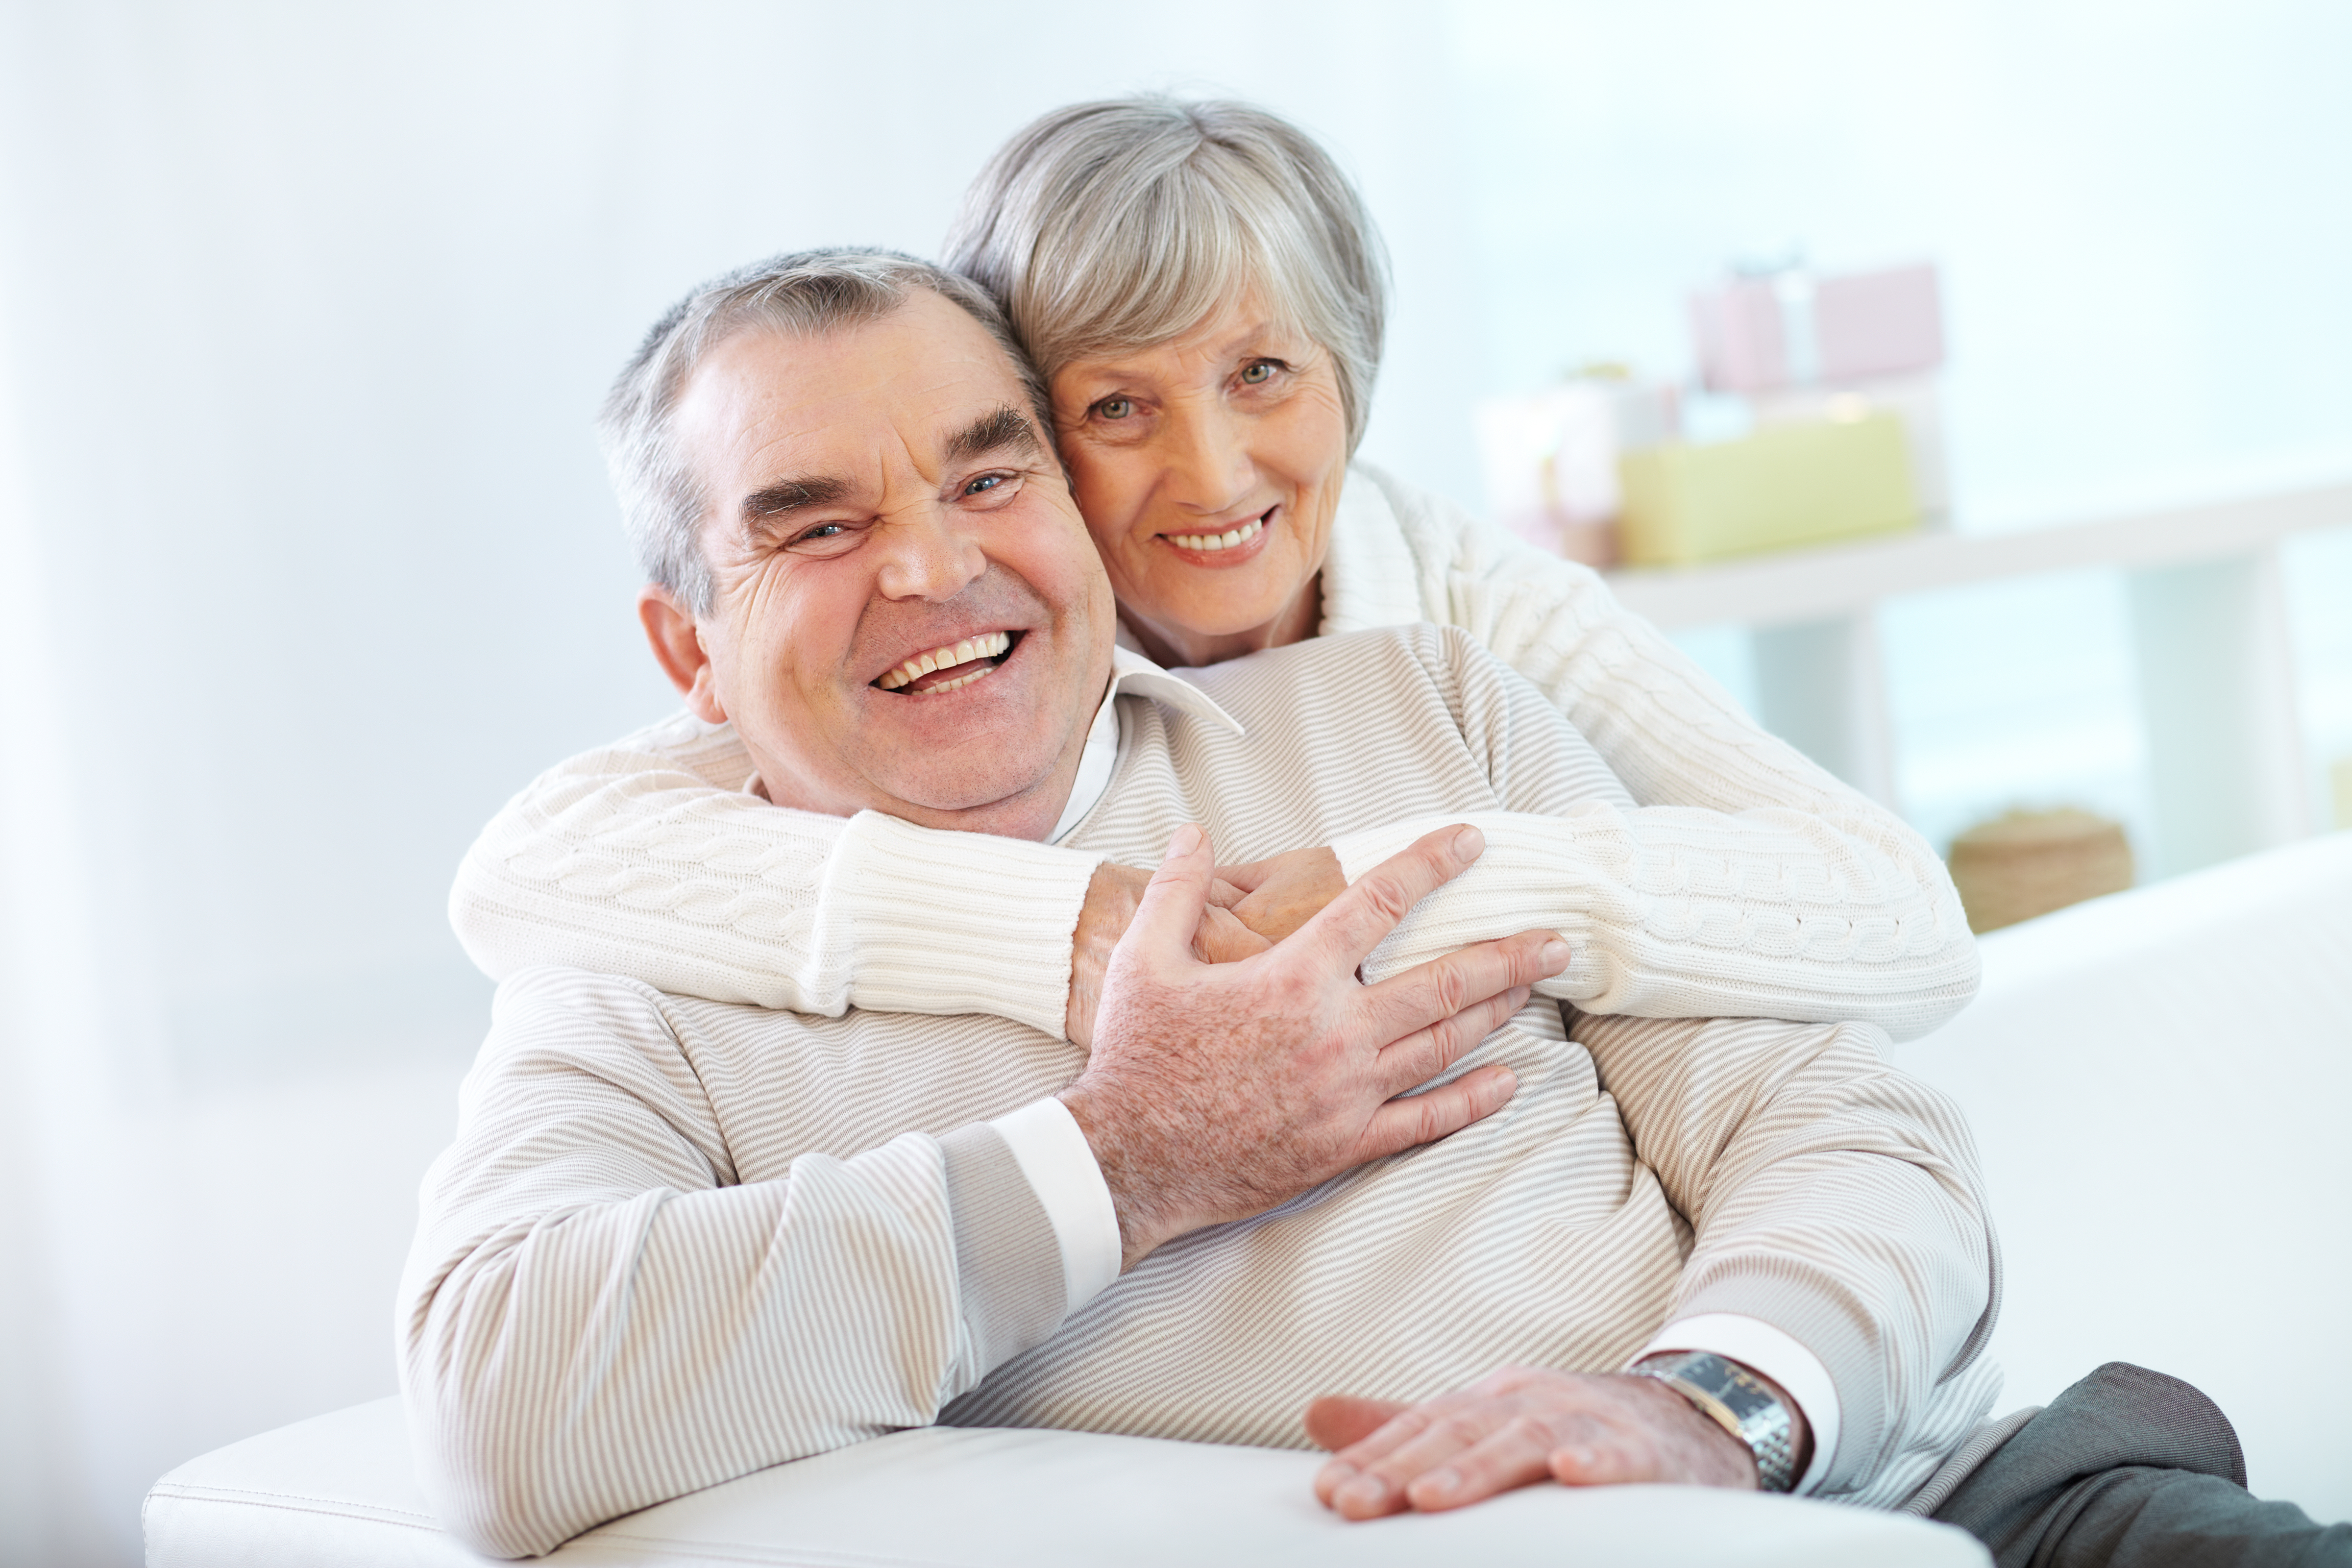 dental implants in west sussex at Hassocks Dental Surgery